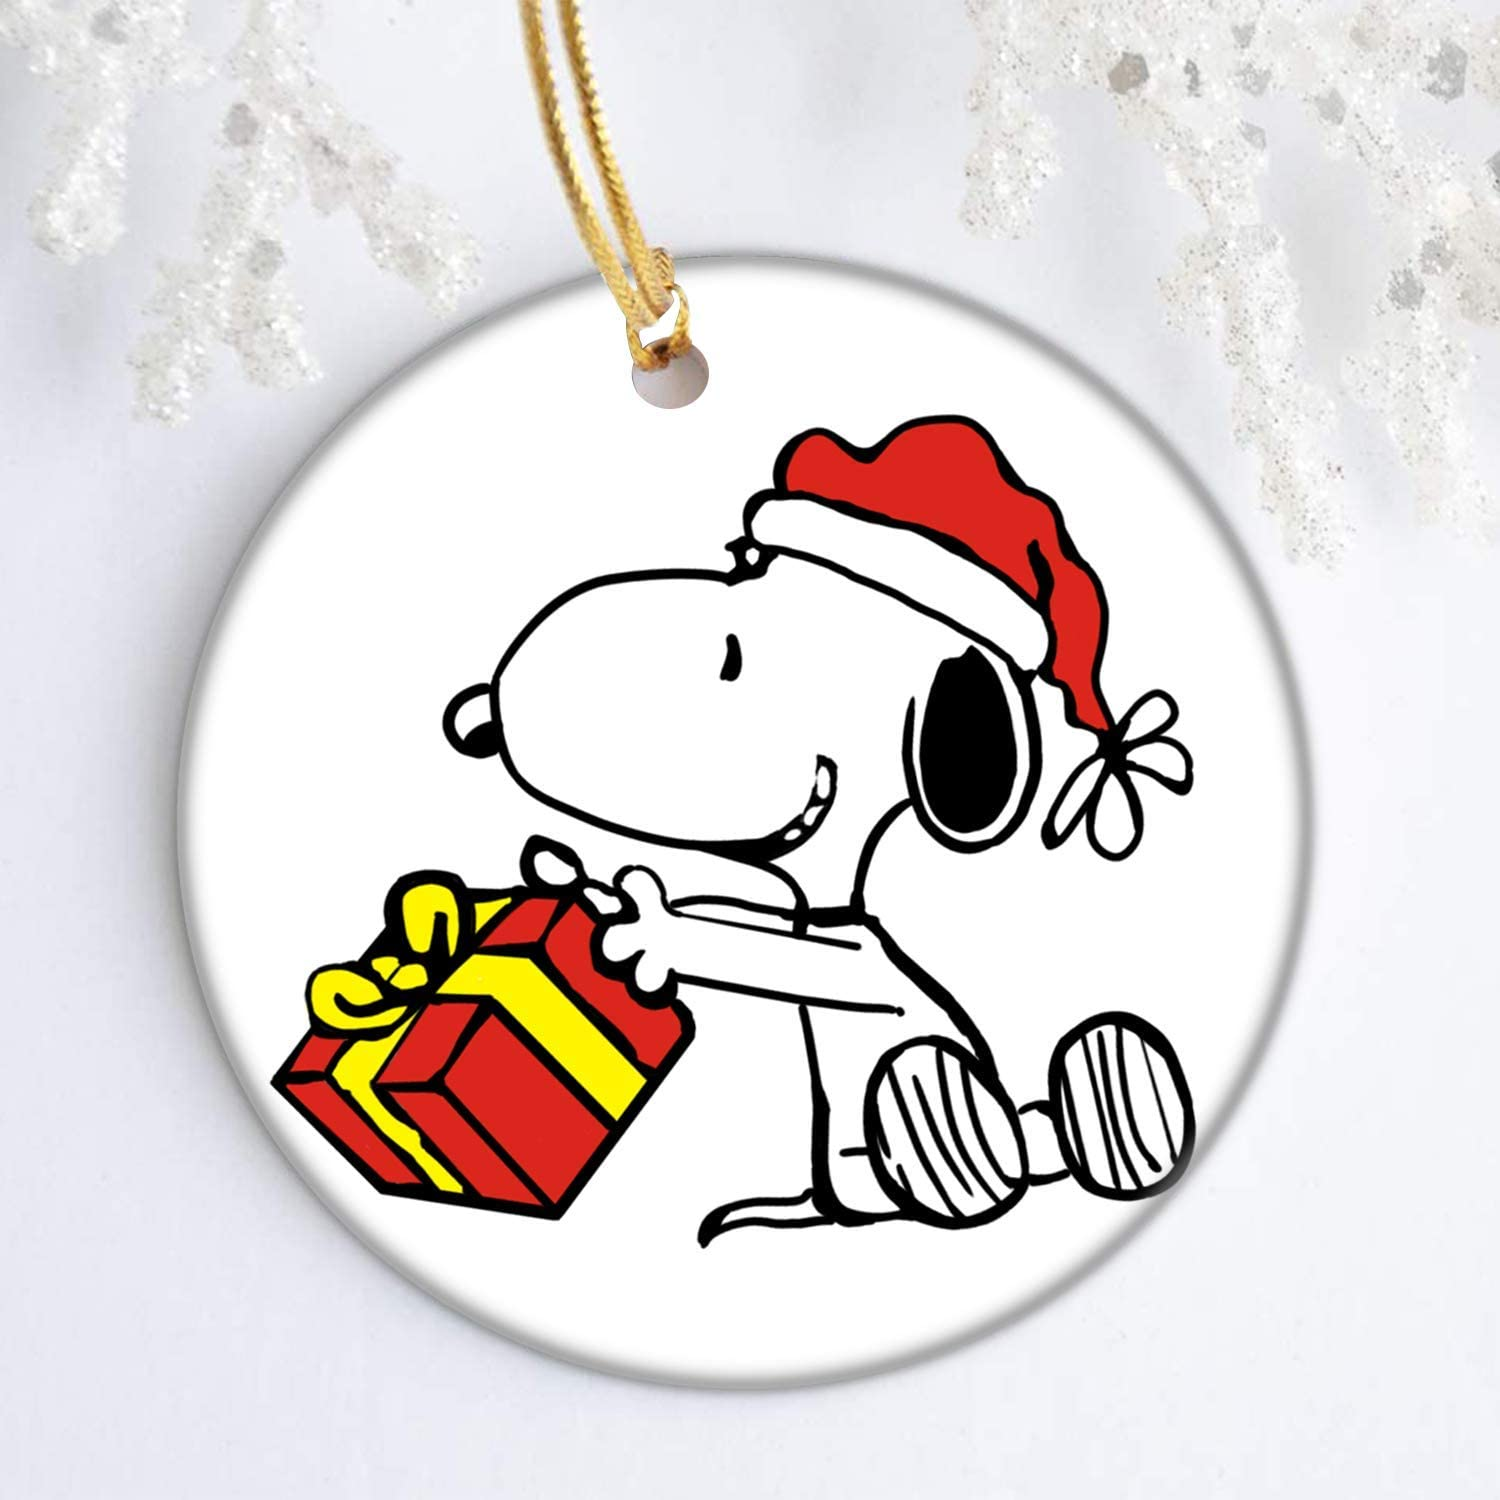 brainief Christmas Ornaments Snoopy with Red Hat Present Charlie Brown Peanuts Christmas Tree Decoration Round Ceramic Ornament with Gift Box Xmas Present 3 inch